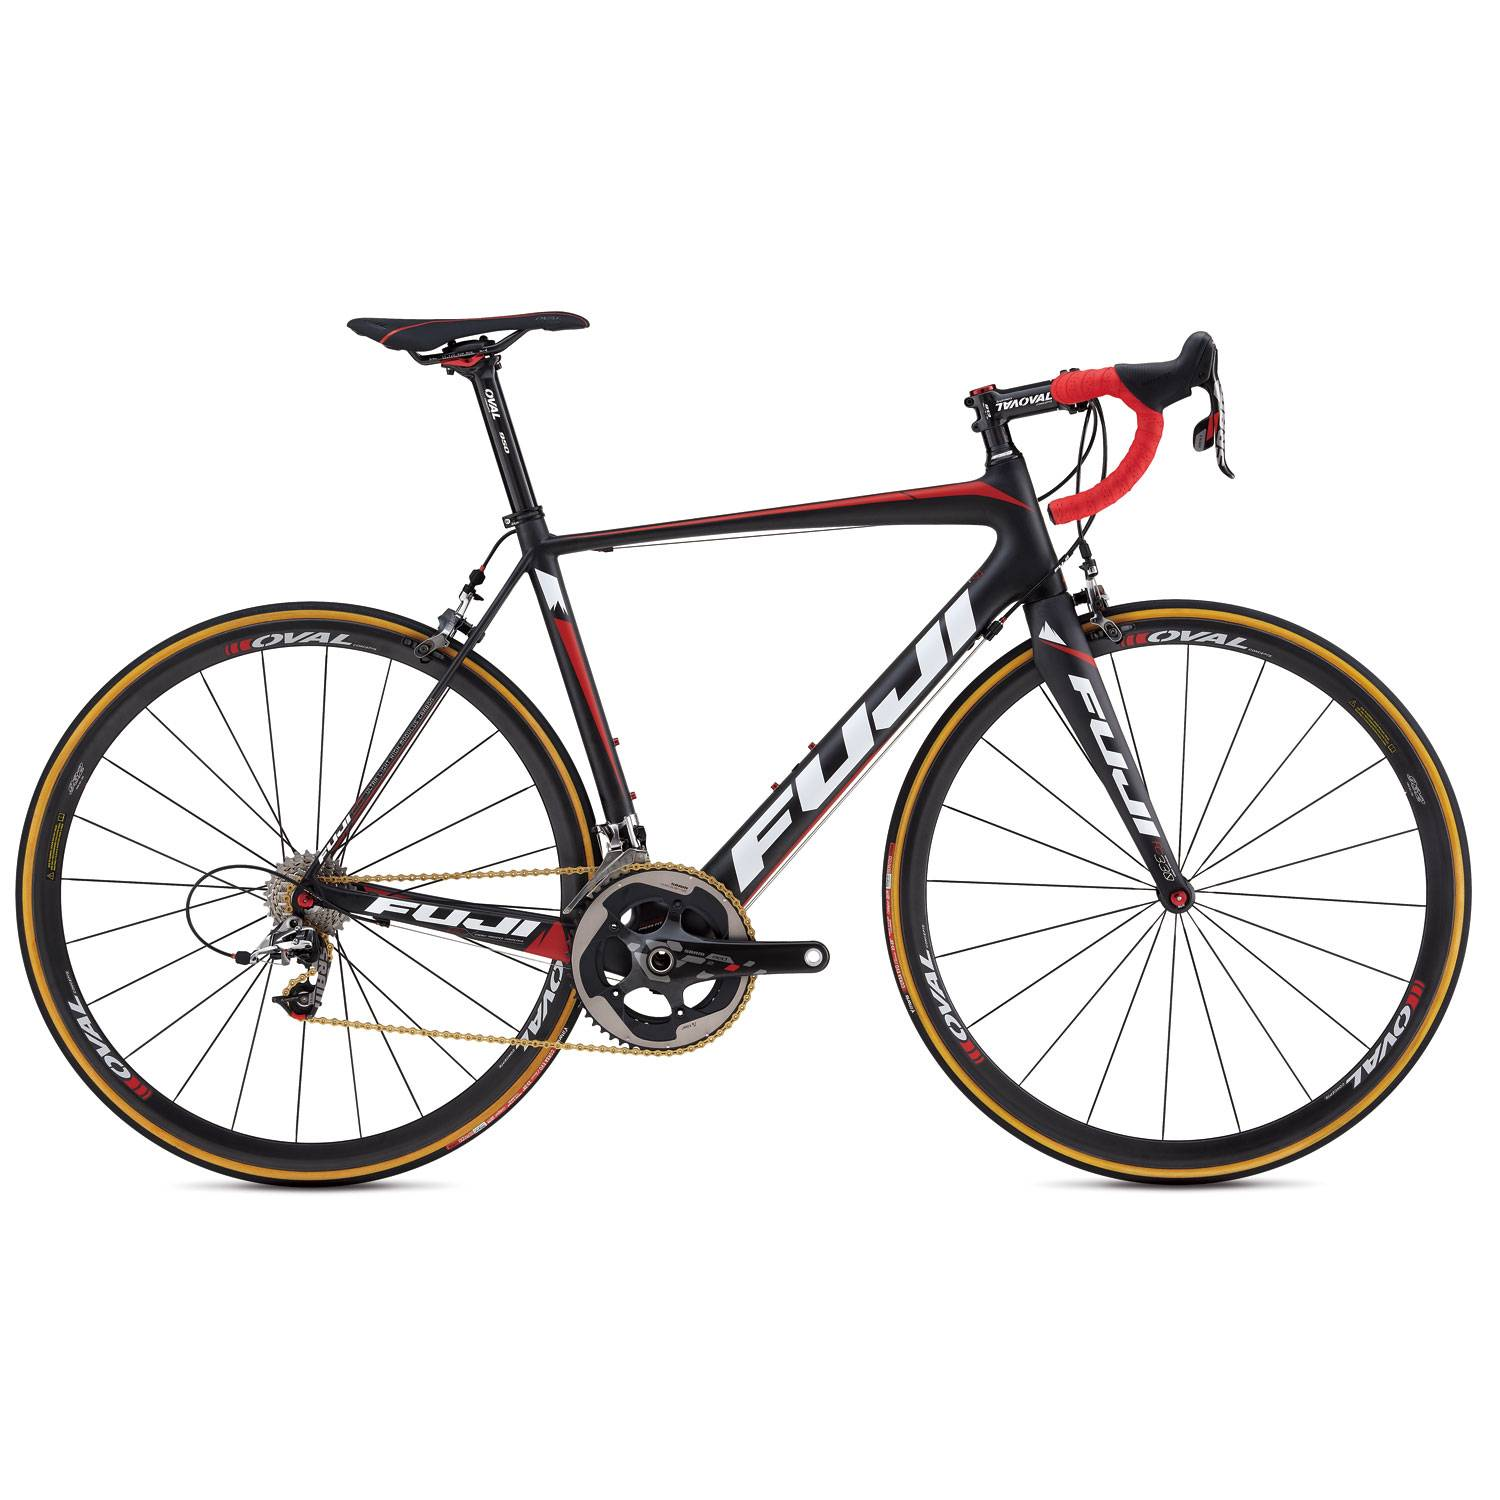 Altamira SL Road Bike - 2014